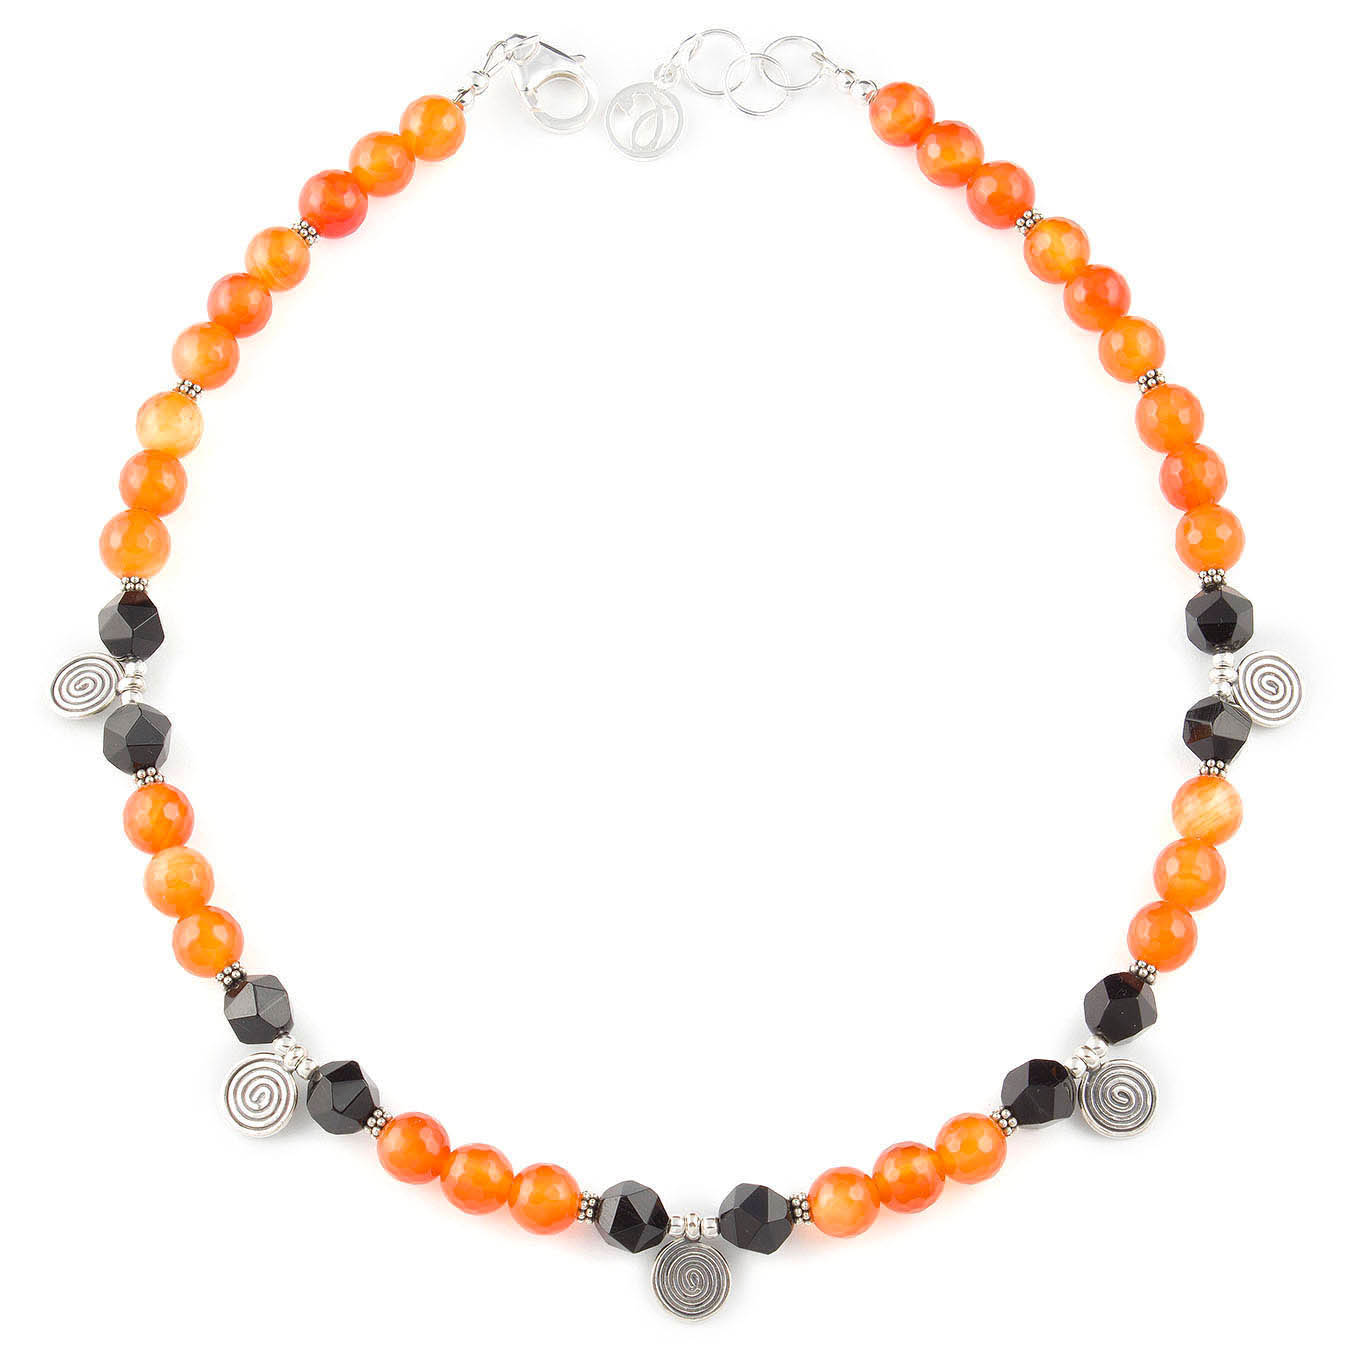 Handcrafted charm bead jewelry made with faceted black and red agate